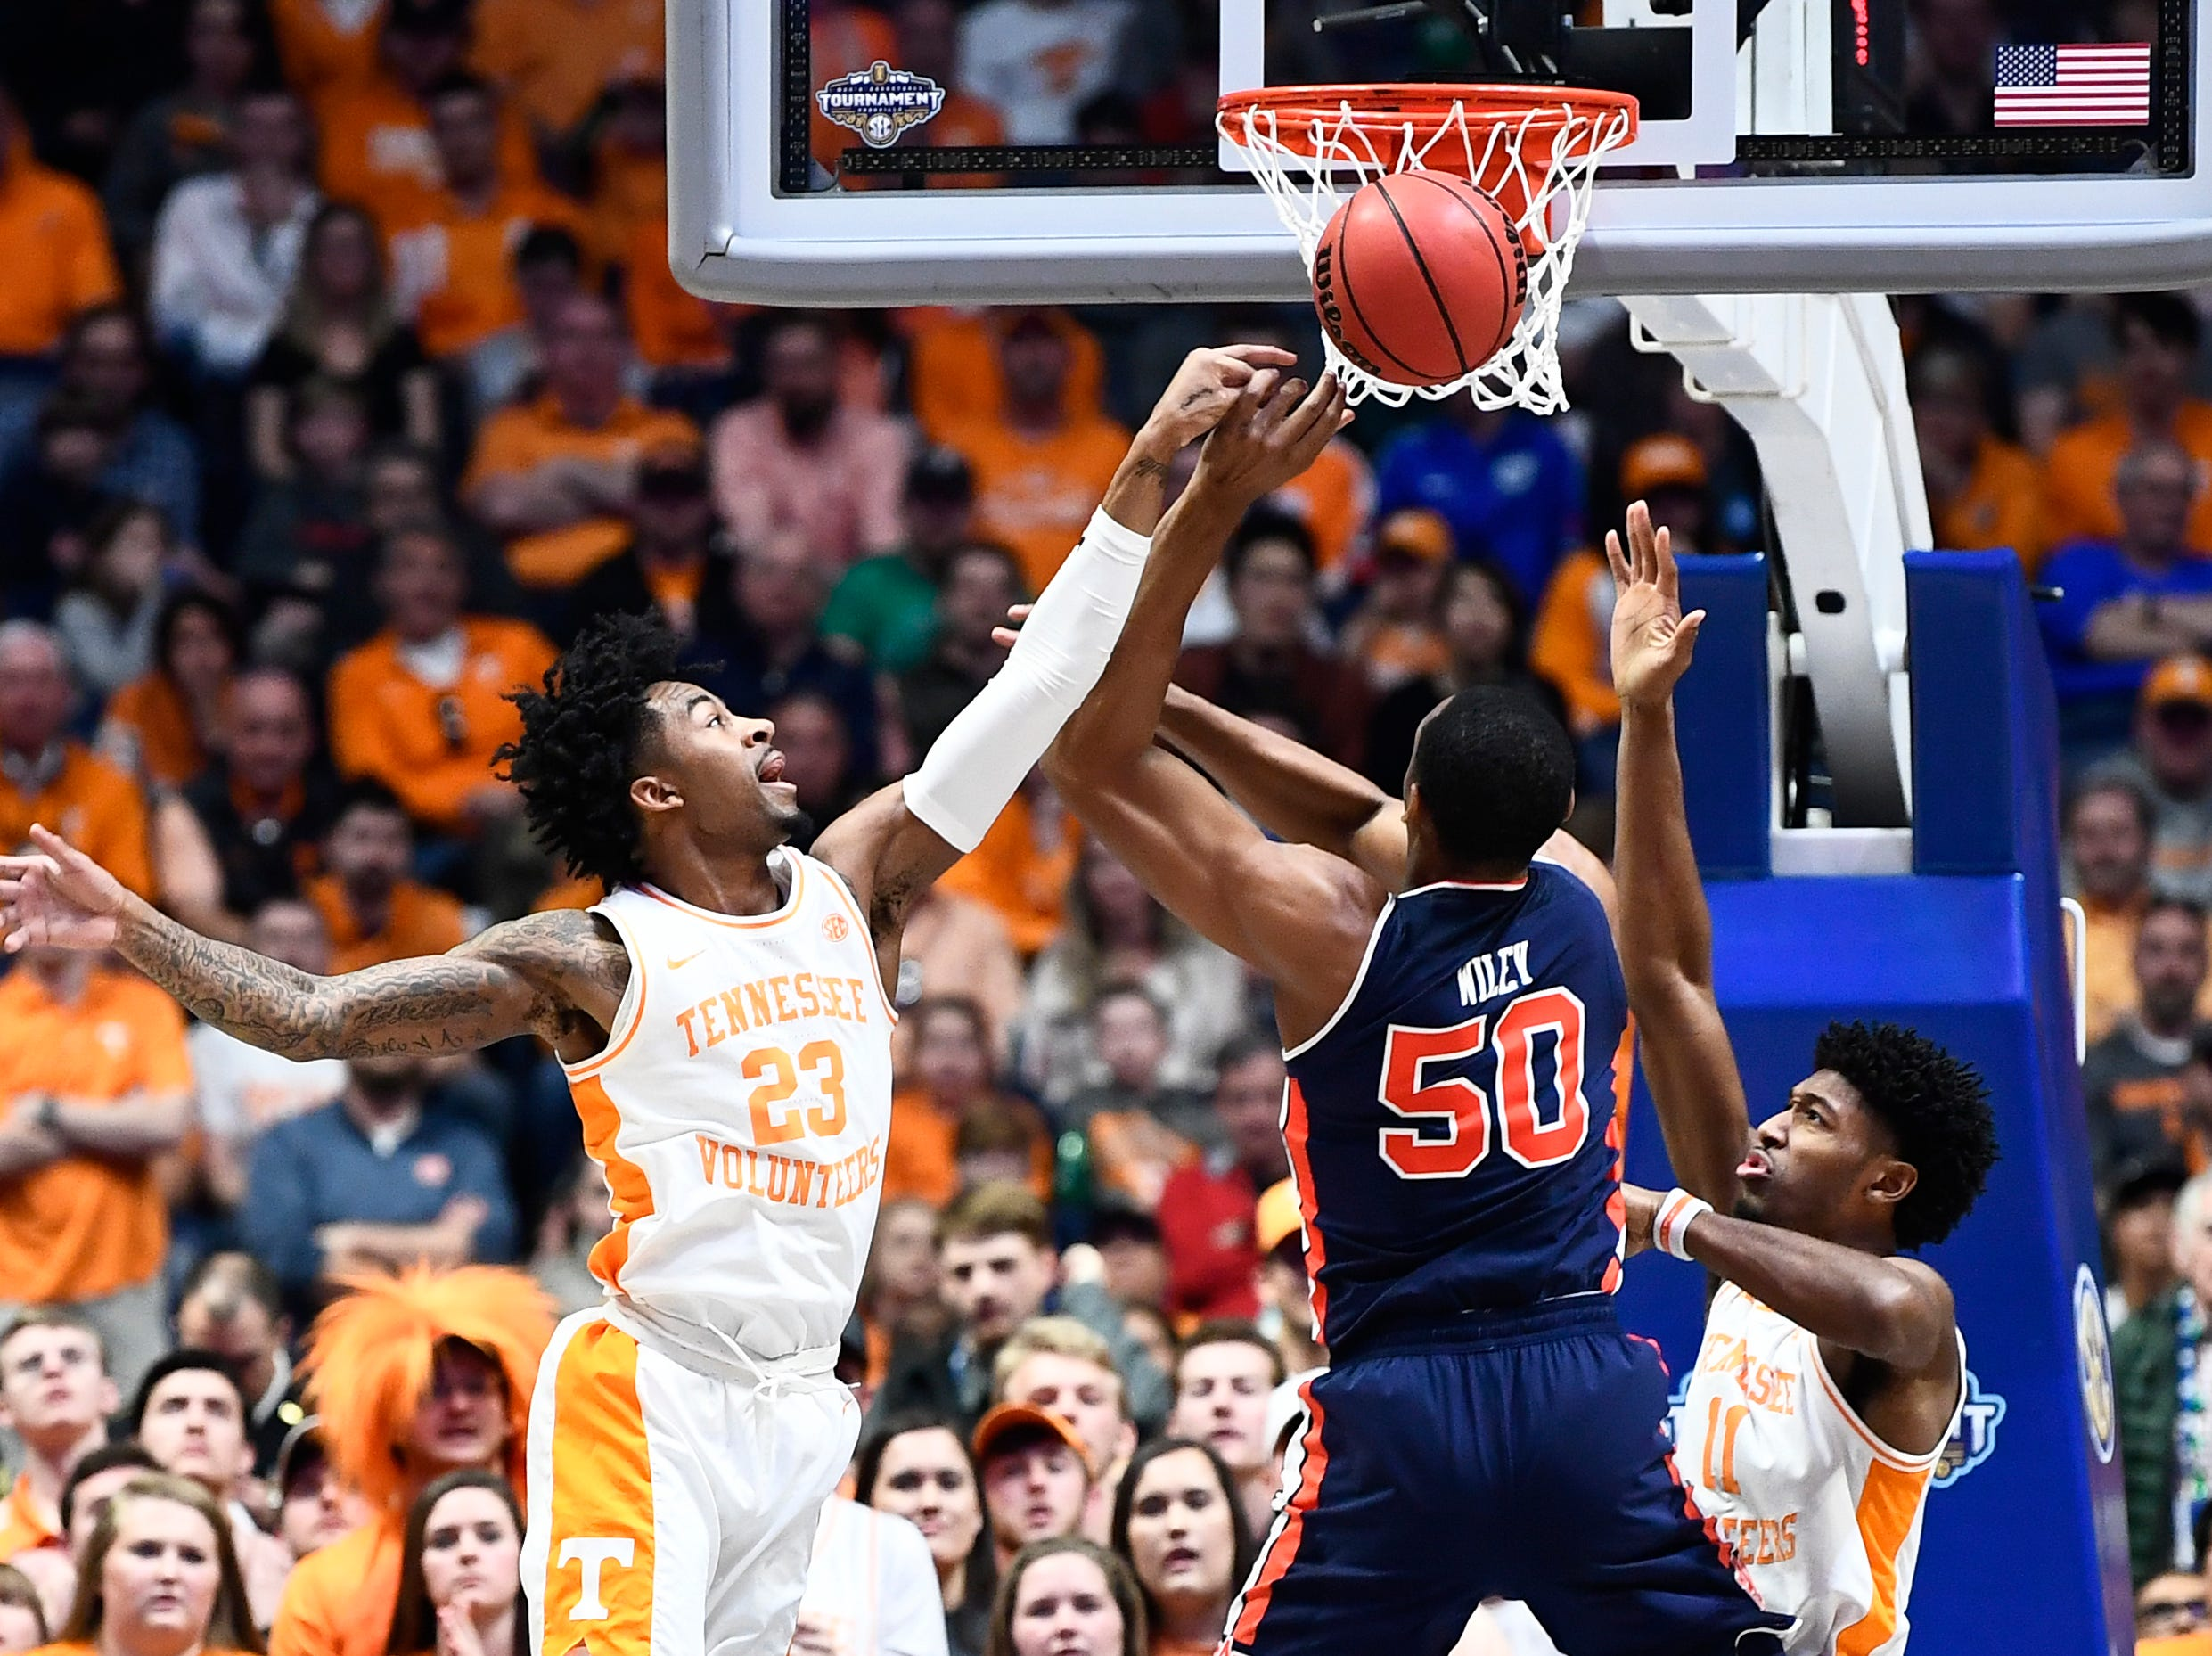 Tennessee guard Jordan Bowden (23) and Tennessee forward Kyle Alexander (11) defend Auburn center Austin Wiley (50) during the first half of the SEC Men's Basketball Tournament championship game at Bridgestone Arena in Nashville, Tenn., Sunday, March 17, 2019.